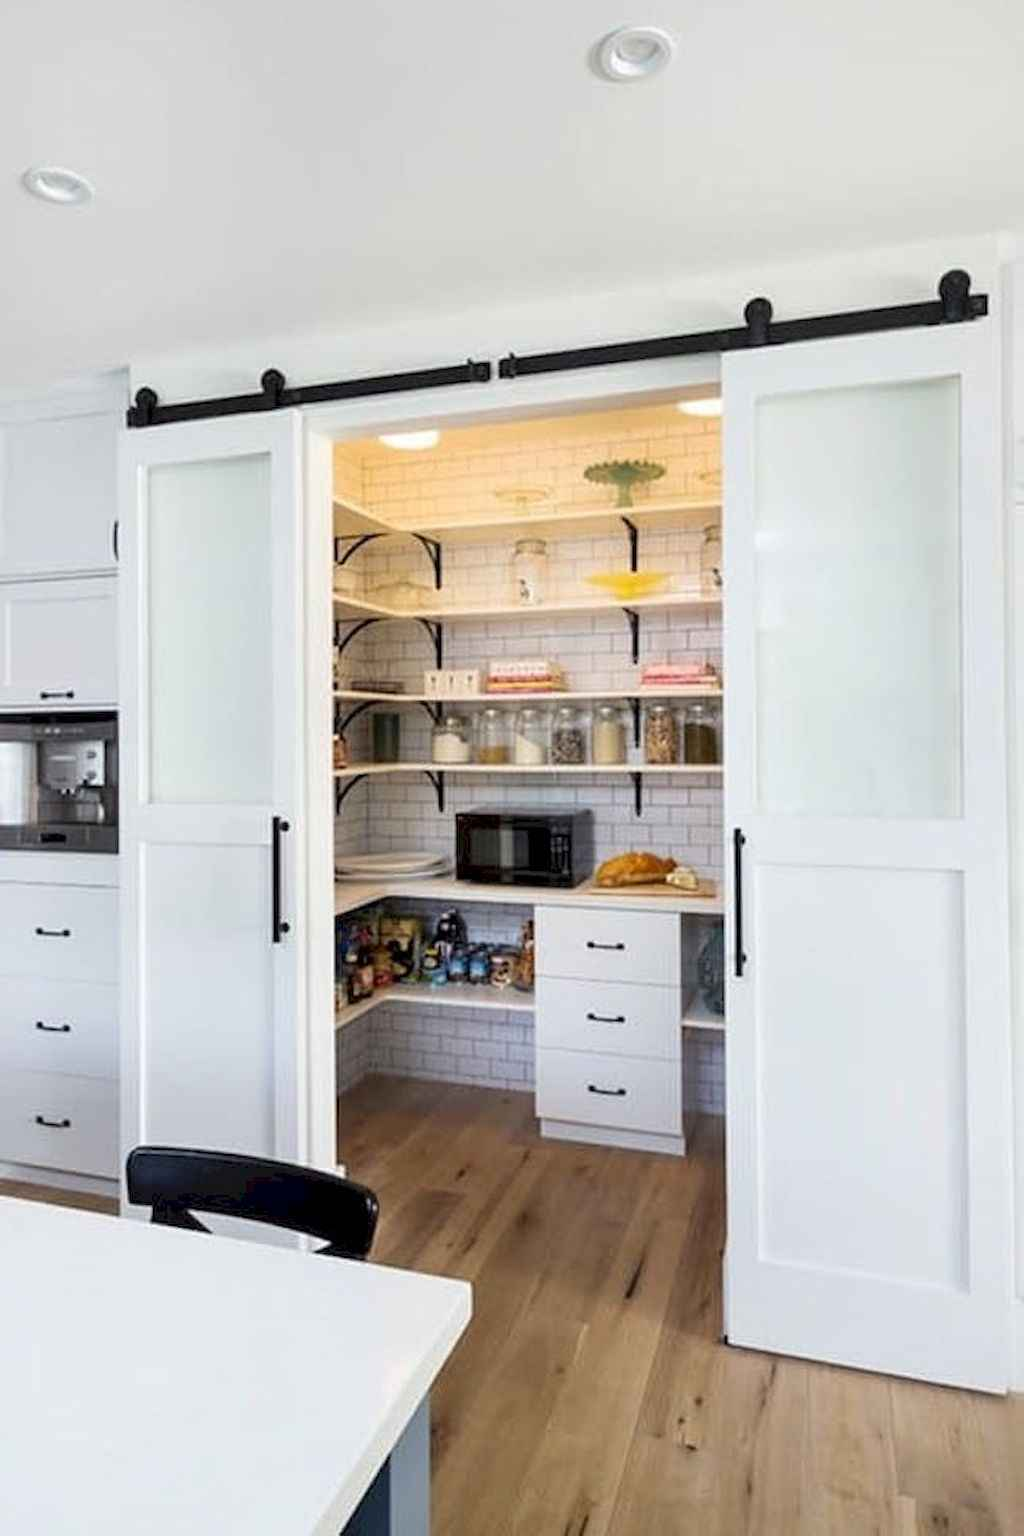 40 Stunning Farmhouse Kitchen Ideas On A Budget 26 Roomadness Com